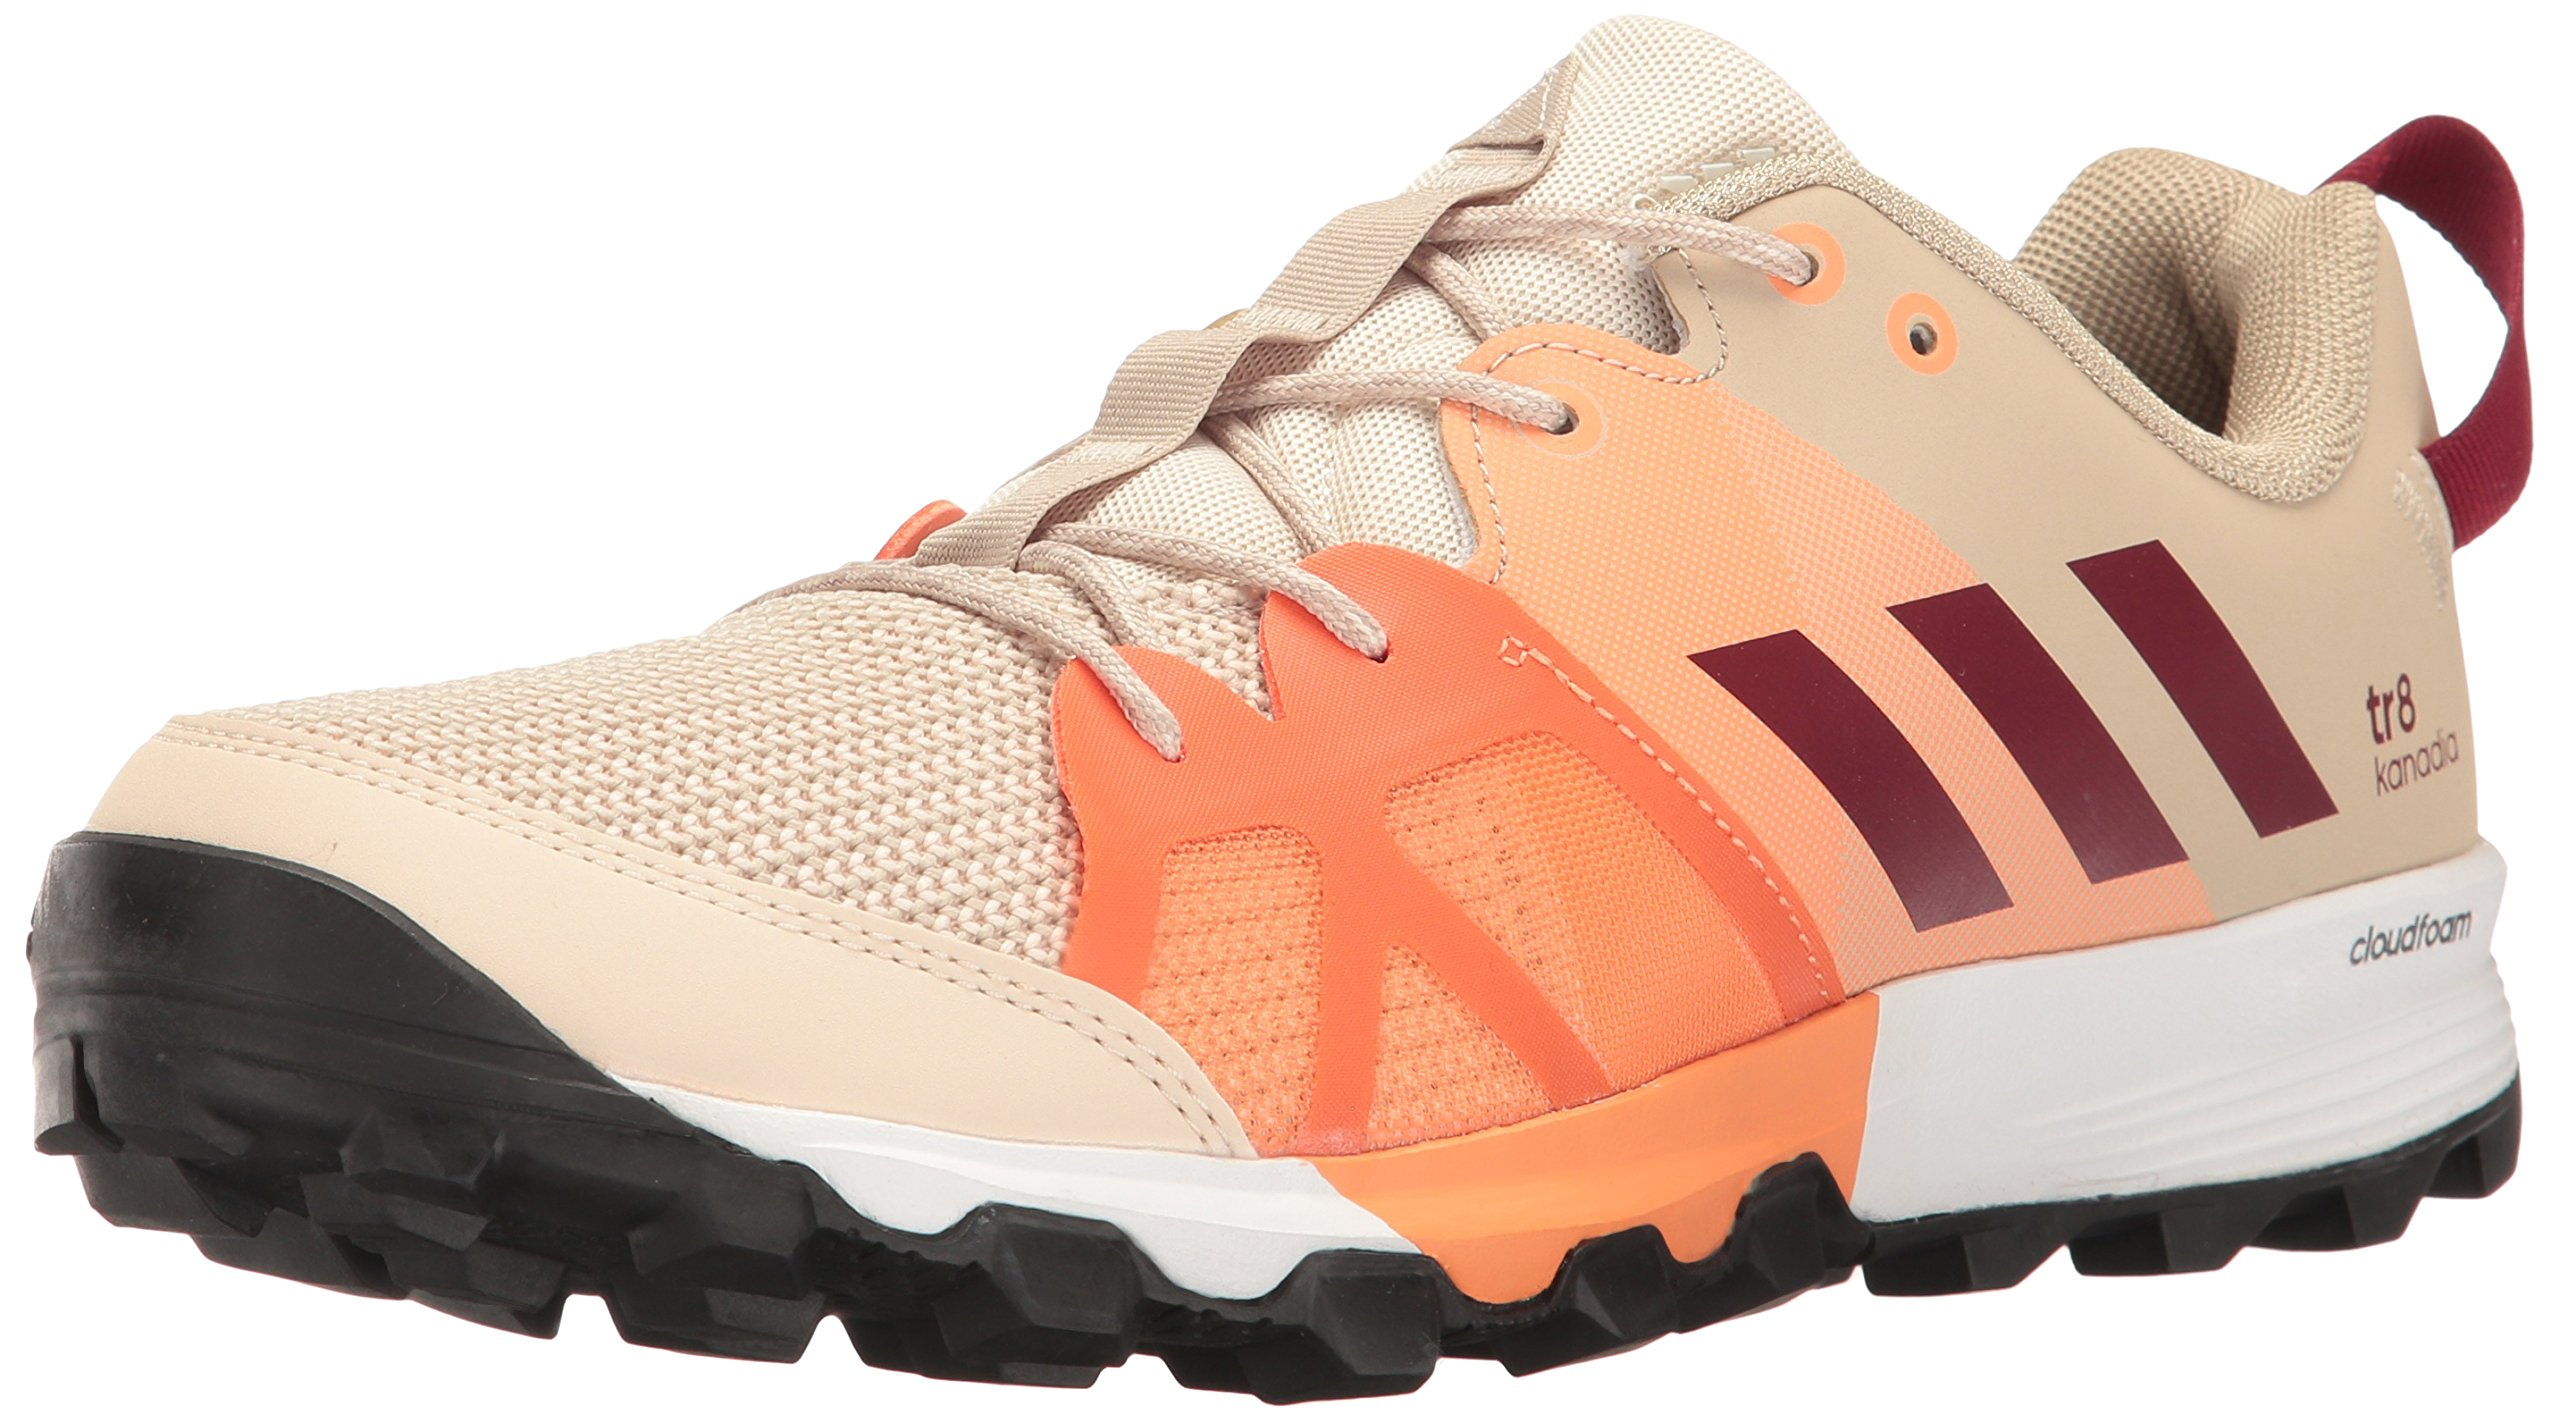 adidas Outdoor Women's Kanadia 8 TR Trail Running Shoe, Linen/Col. Burgundy/Glow Orange, 10.5 M US by adidas outdoor (Image #1)